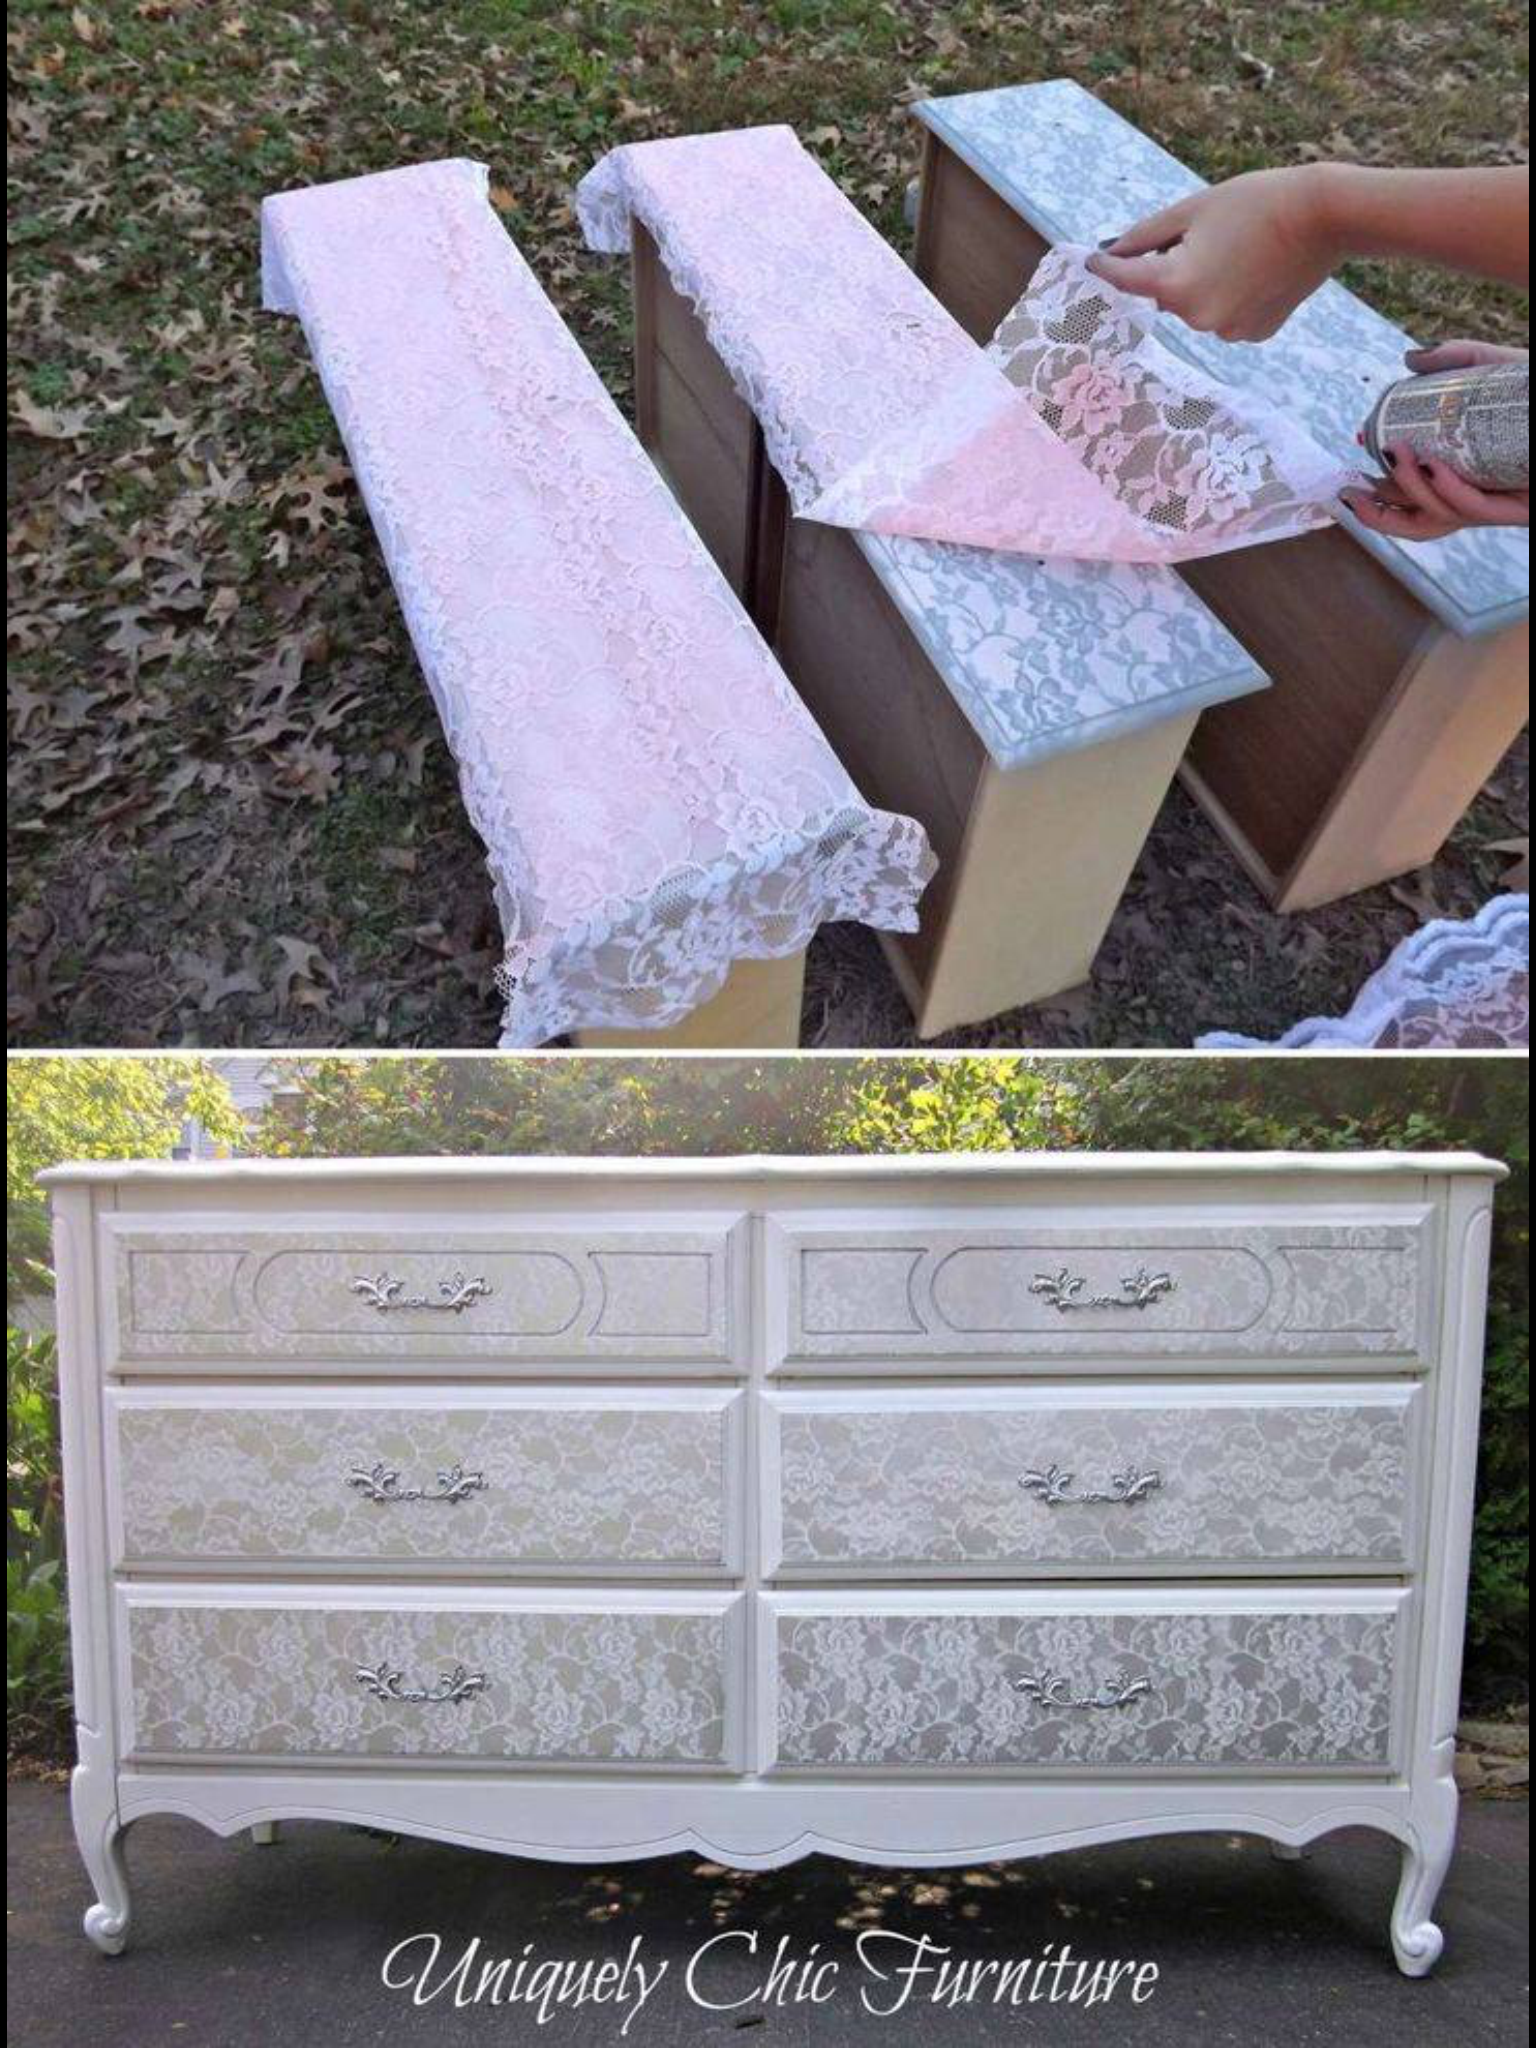 How To Give An Old Dresser Amazing Lace Makeover Diy Furniture Ideas Makeovers A Interior Design